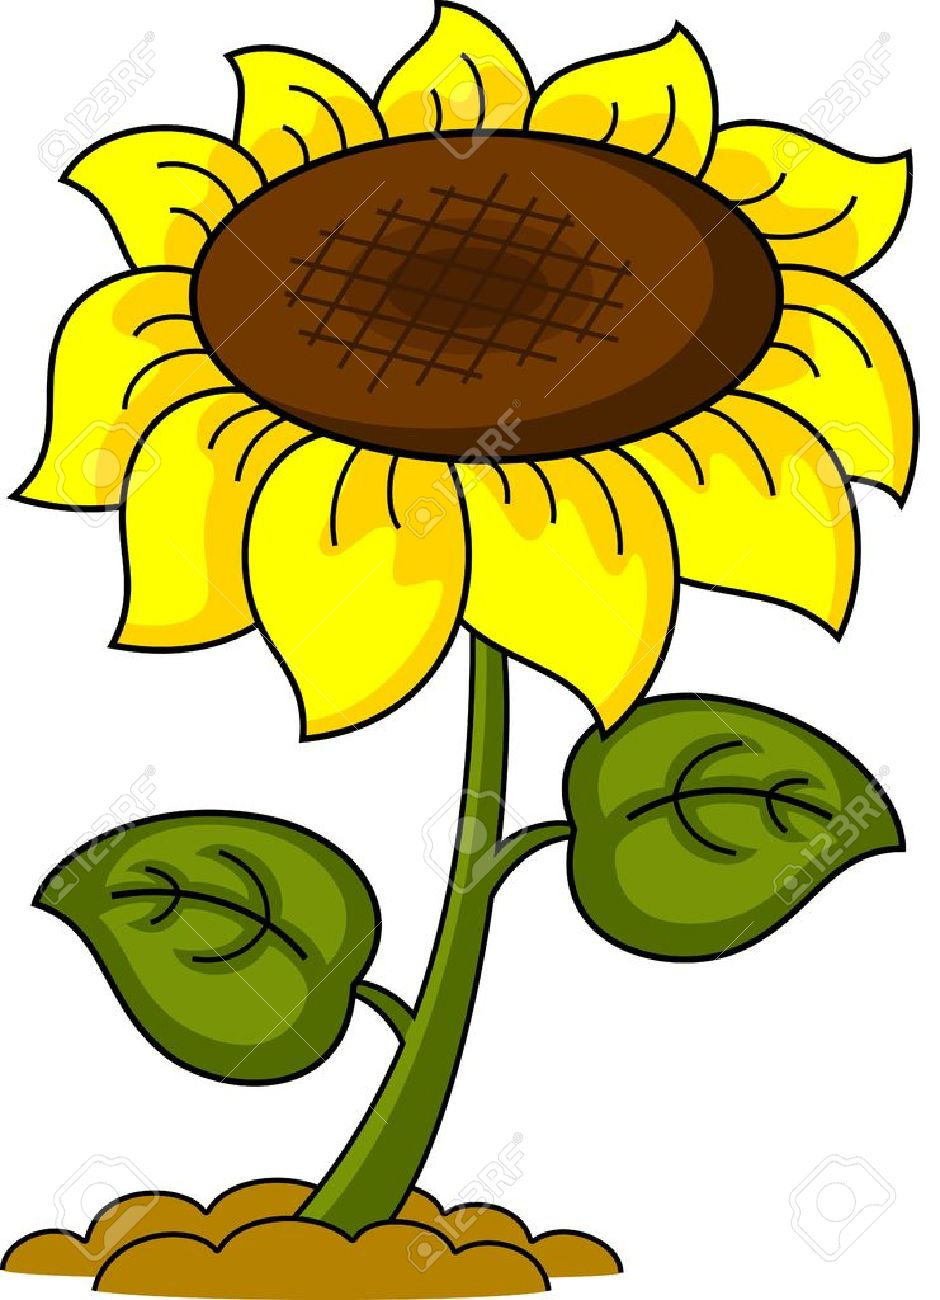 illustration of a cartoon sunflower isolated royalty free